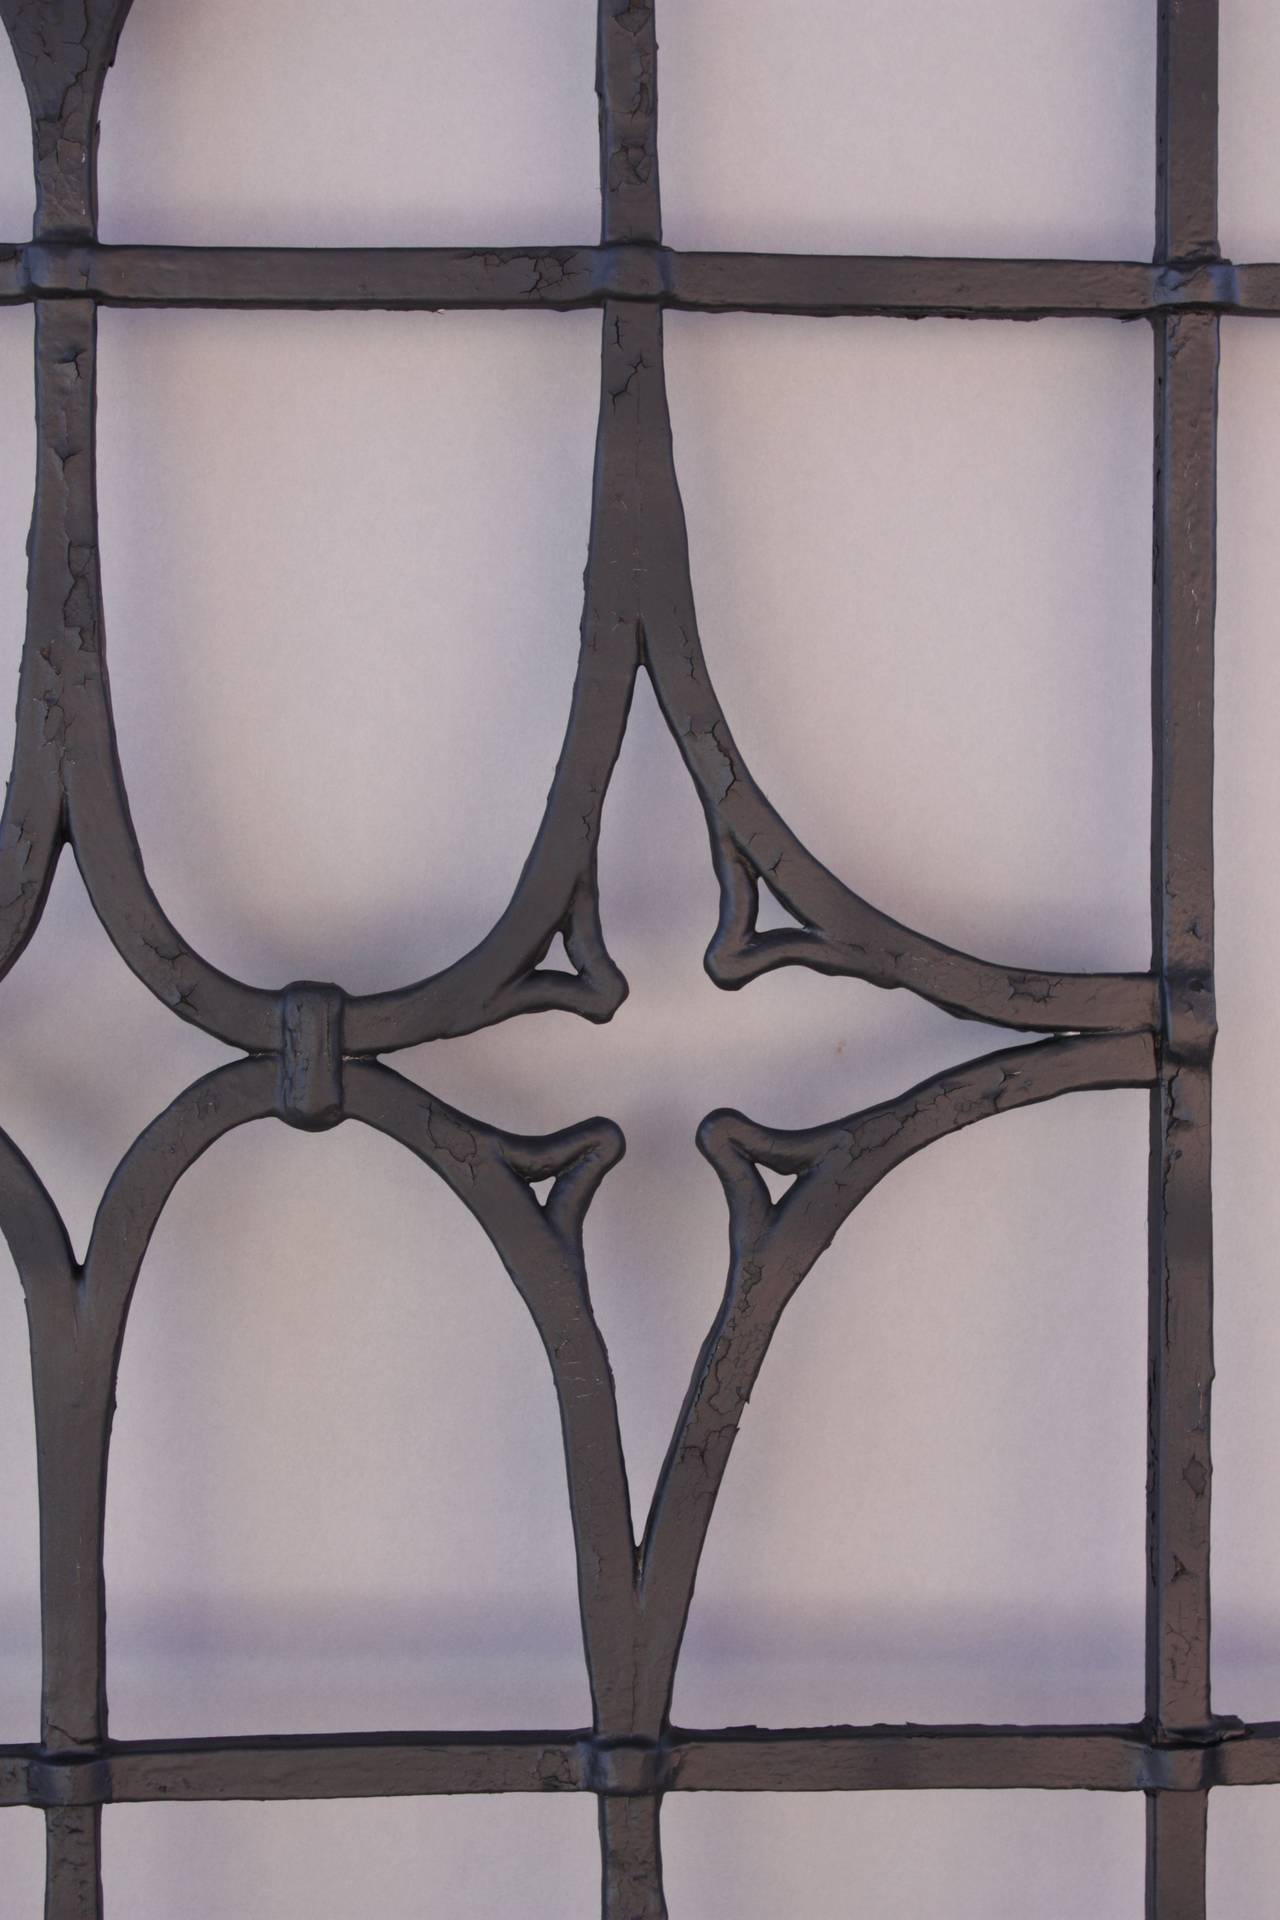 Spanish Colonial One of Two Iron Grills Salvaged from Brentwood House